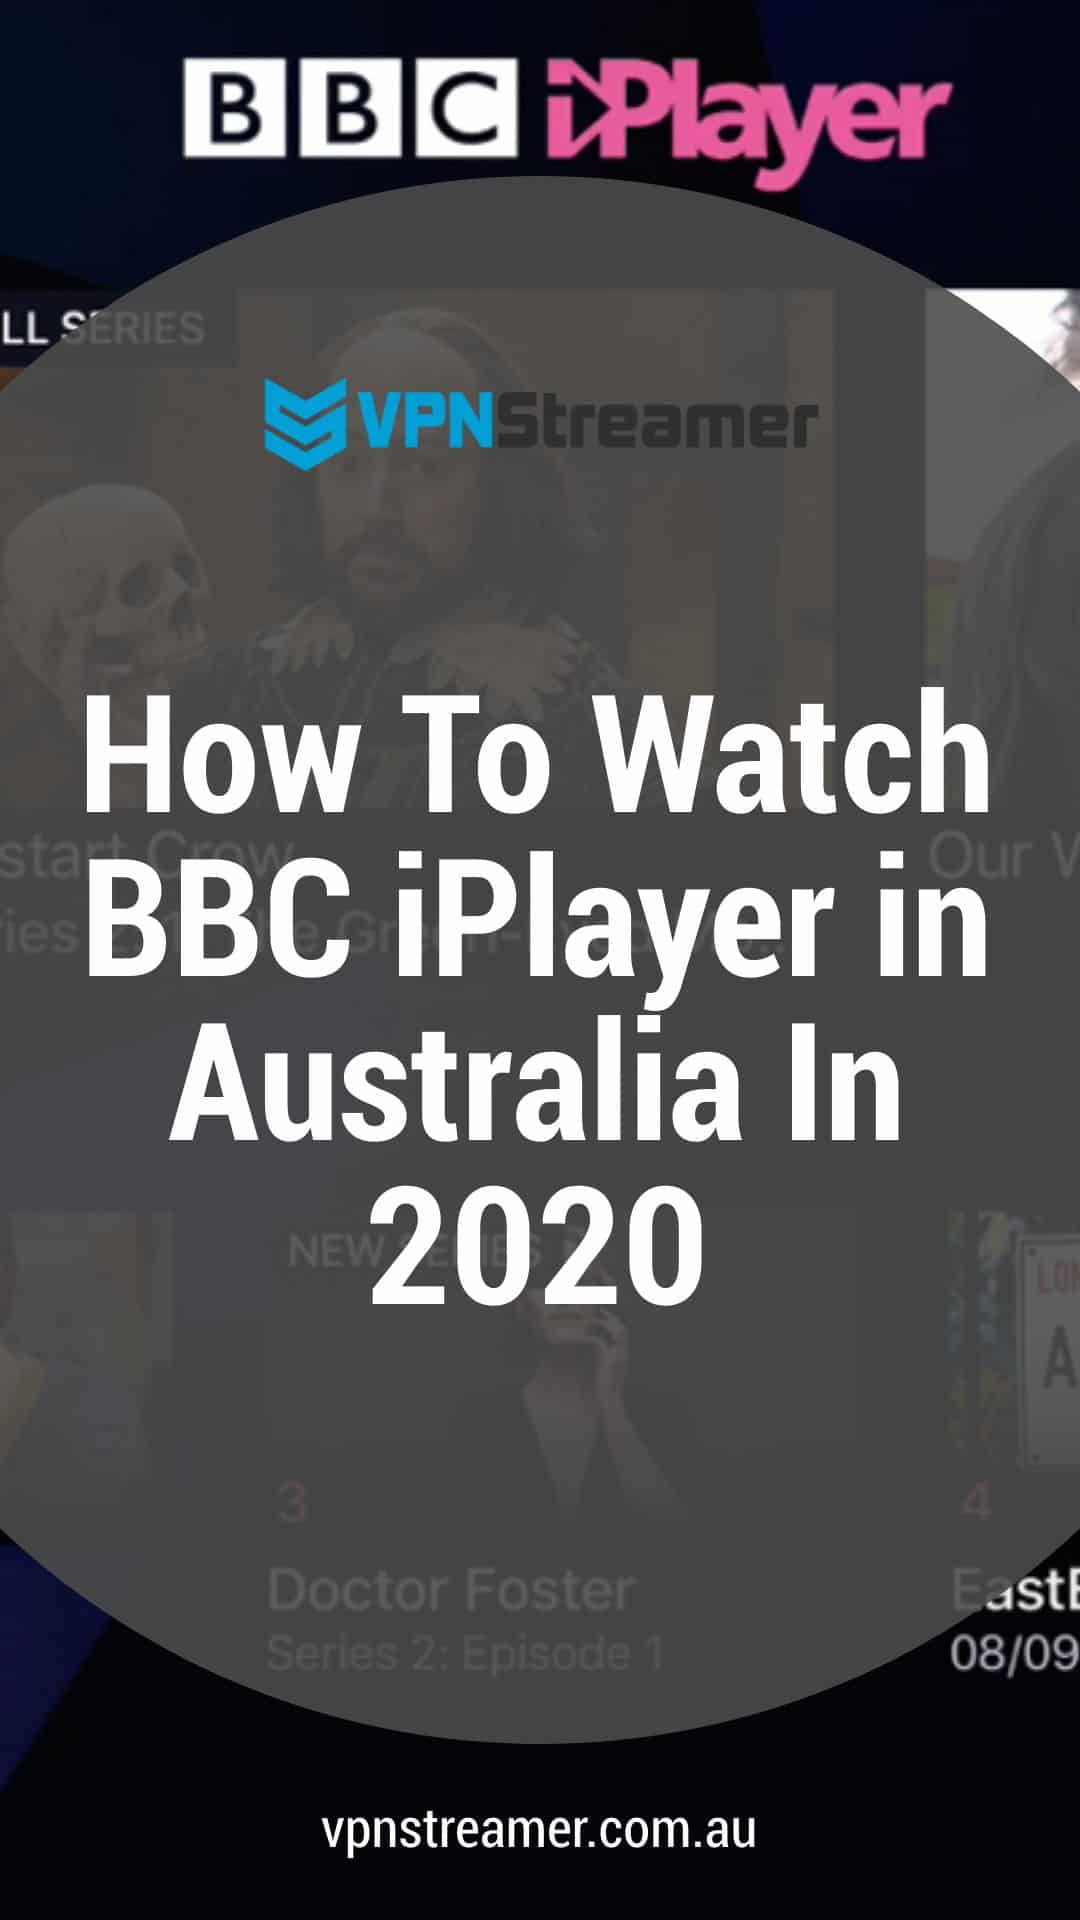 How To Watch BBC iPlayer in Australia In 2020